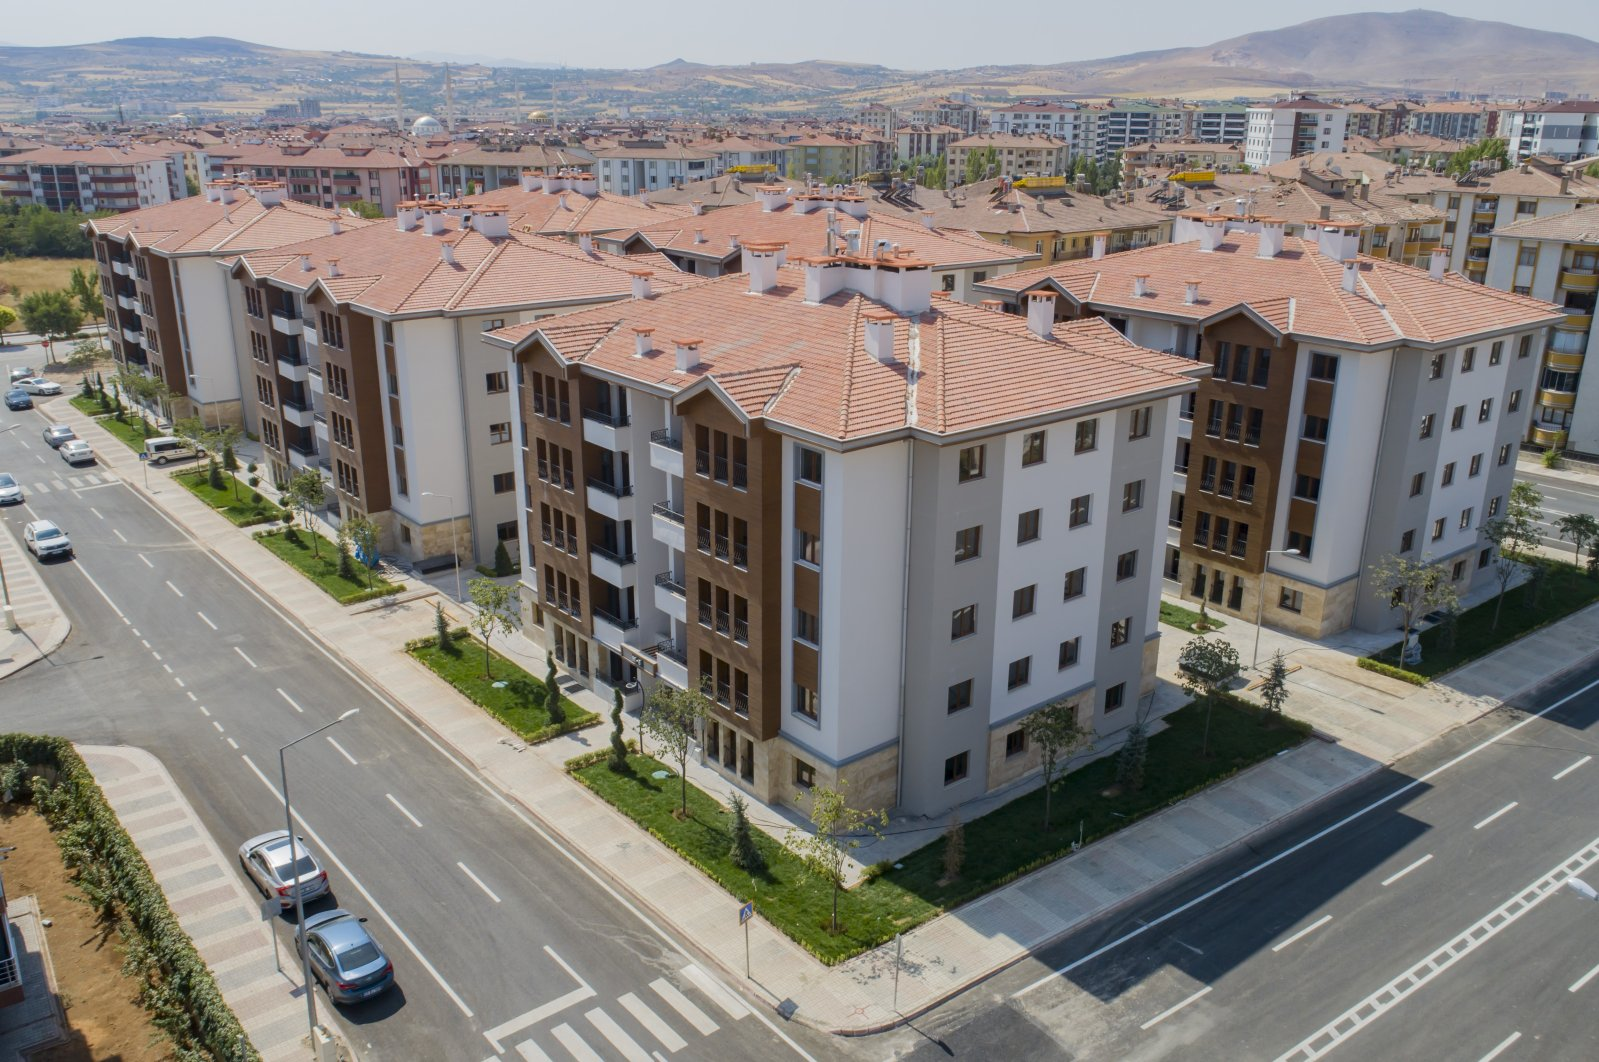 New homes constructed in eastern Elazığ province are seen in this file photo dated Sept. 8, 2020 (AA Photo)